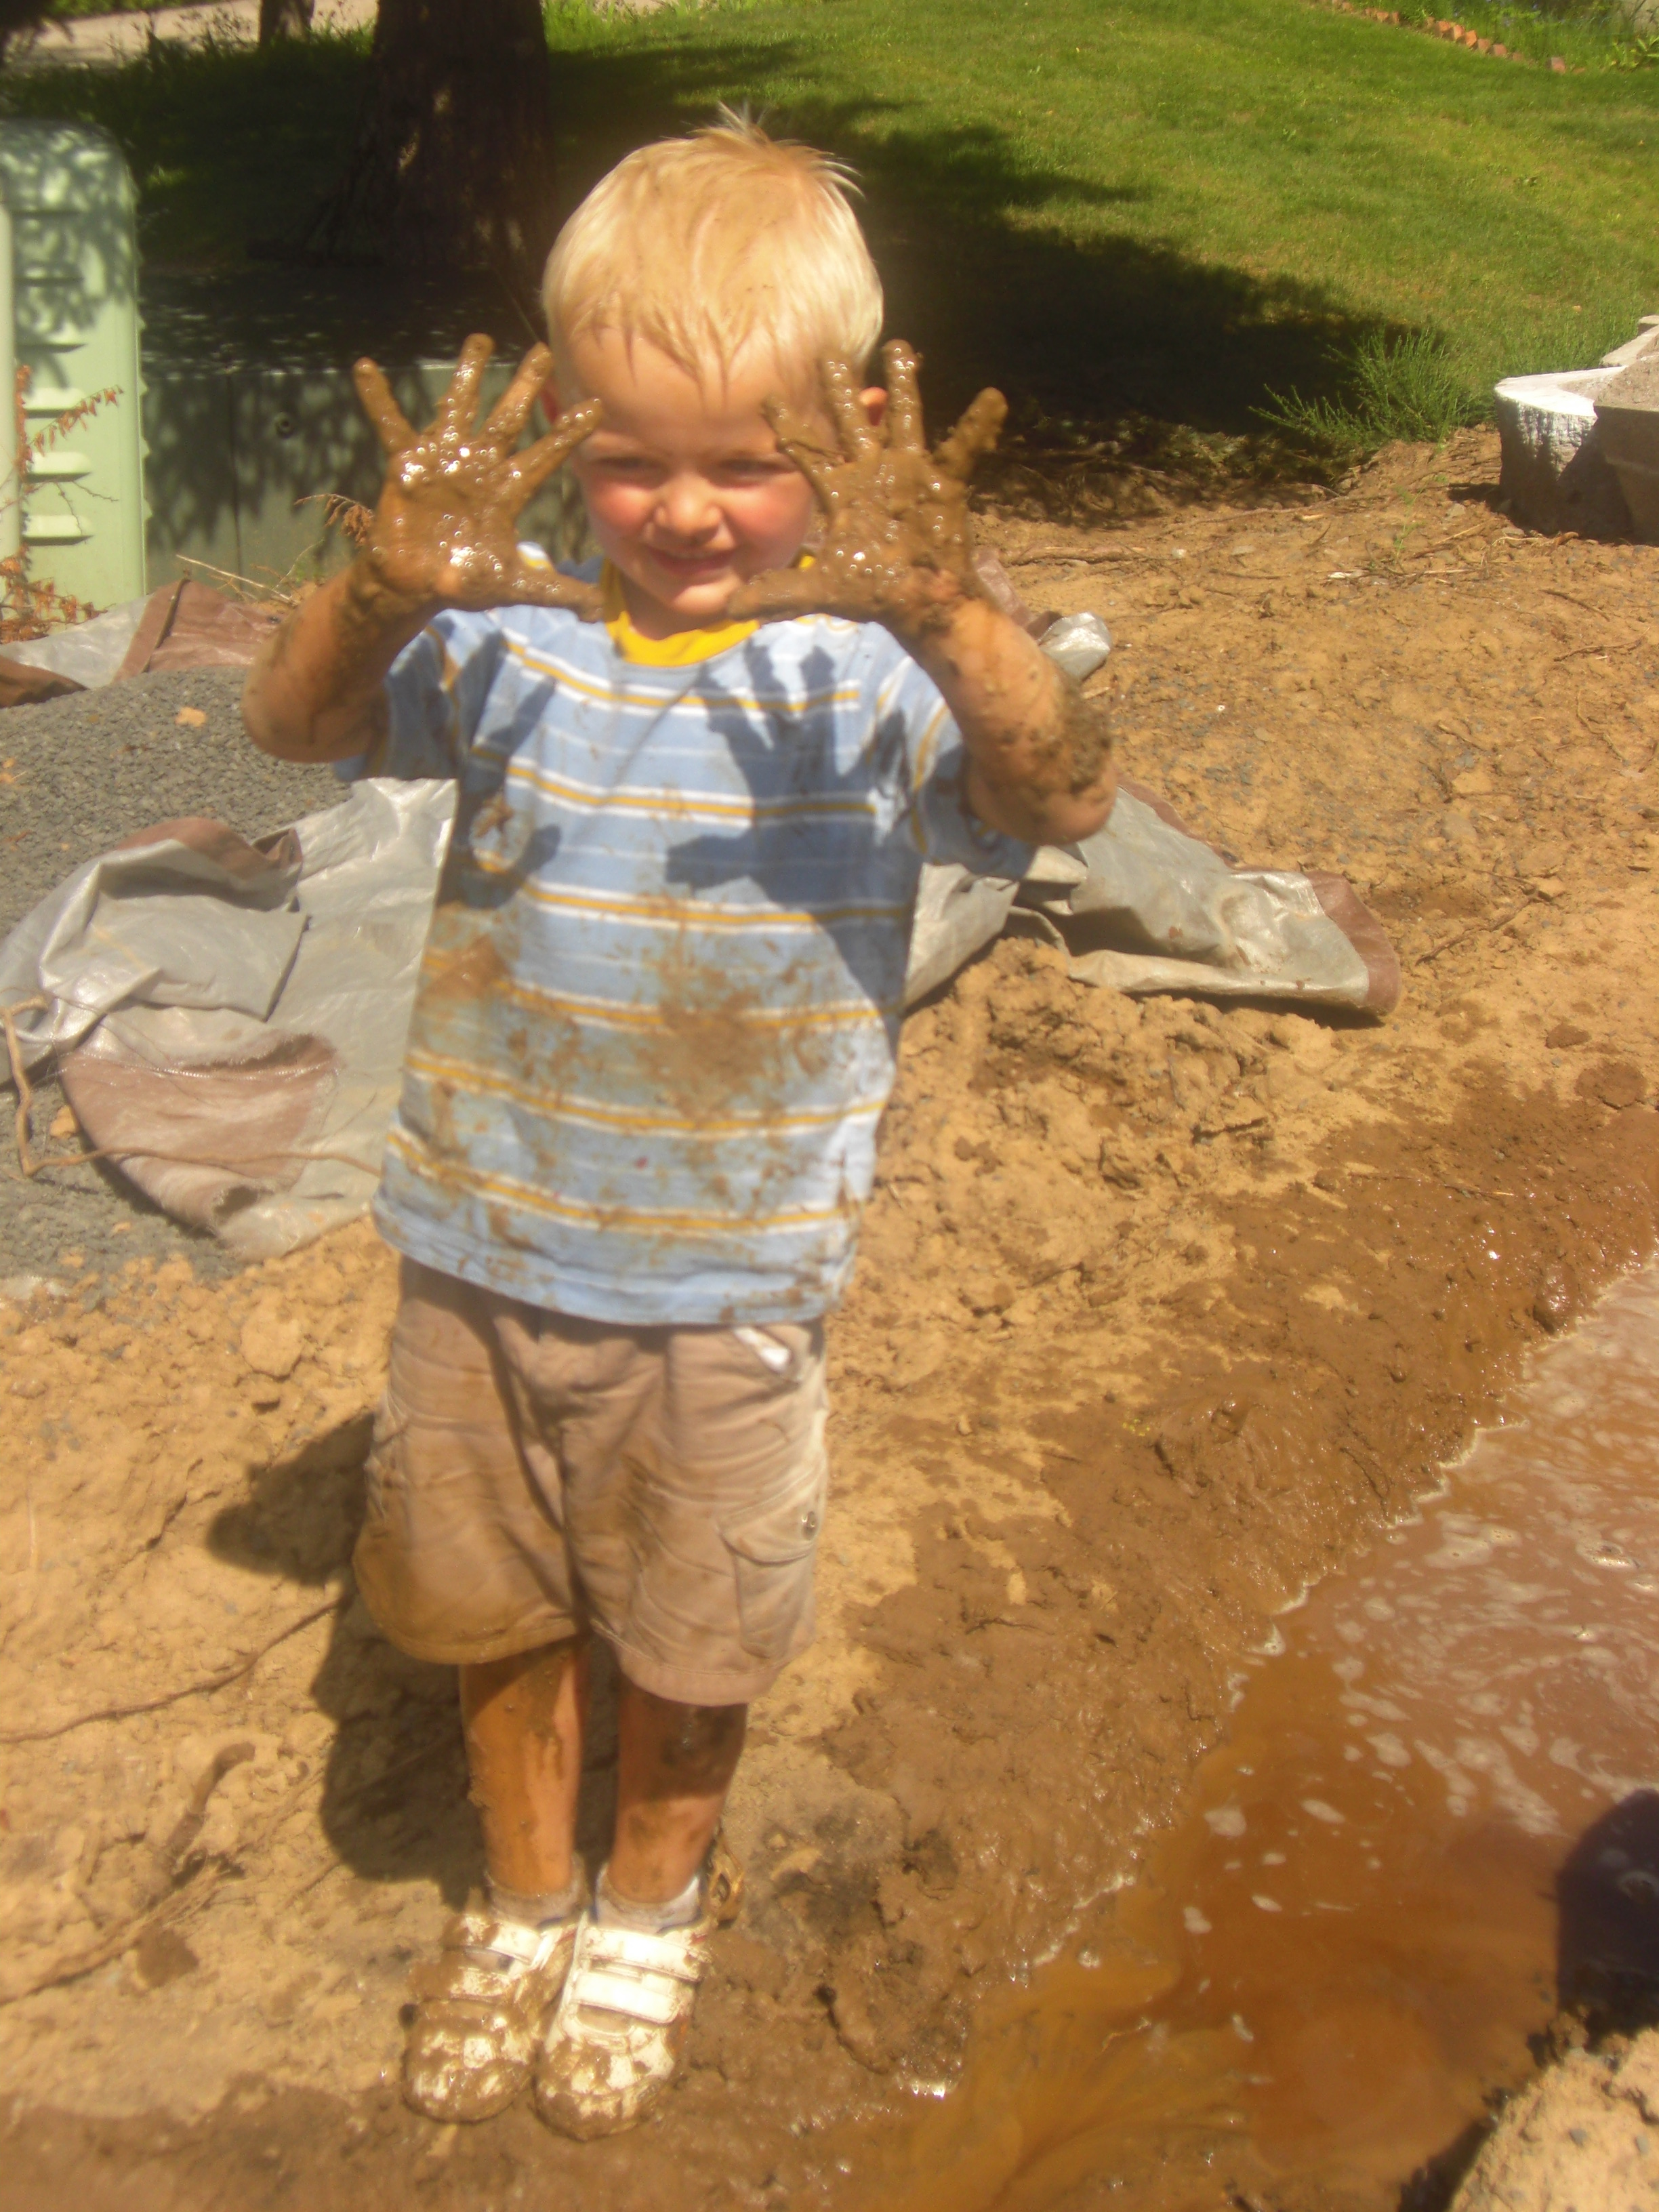 I was slightly less dirty than this! [My oldest back in the day—ultimate mud pies!]